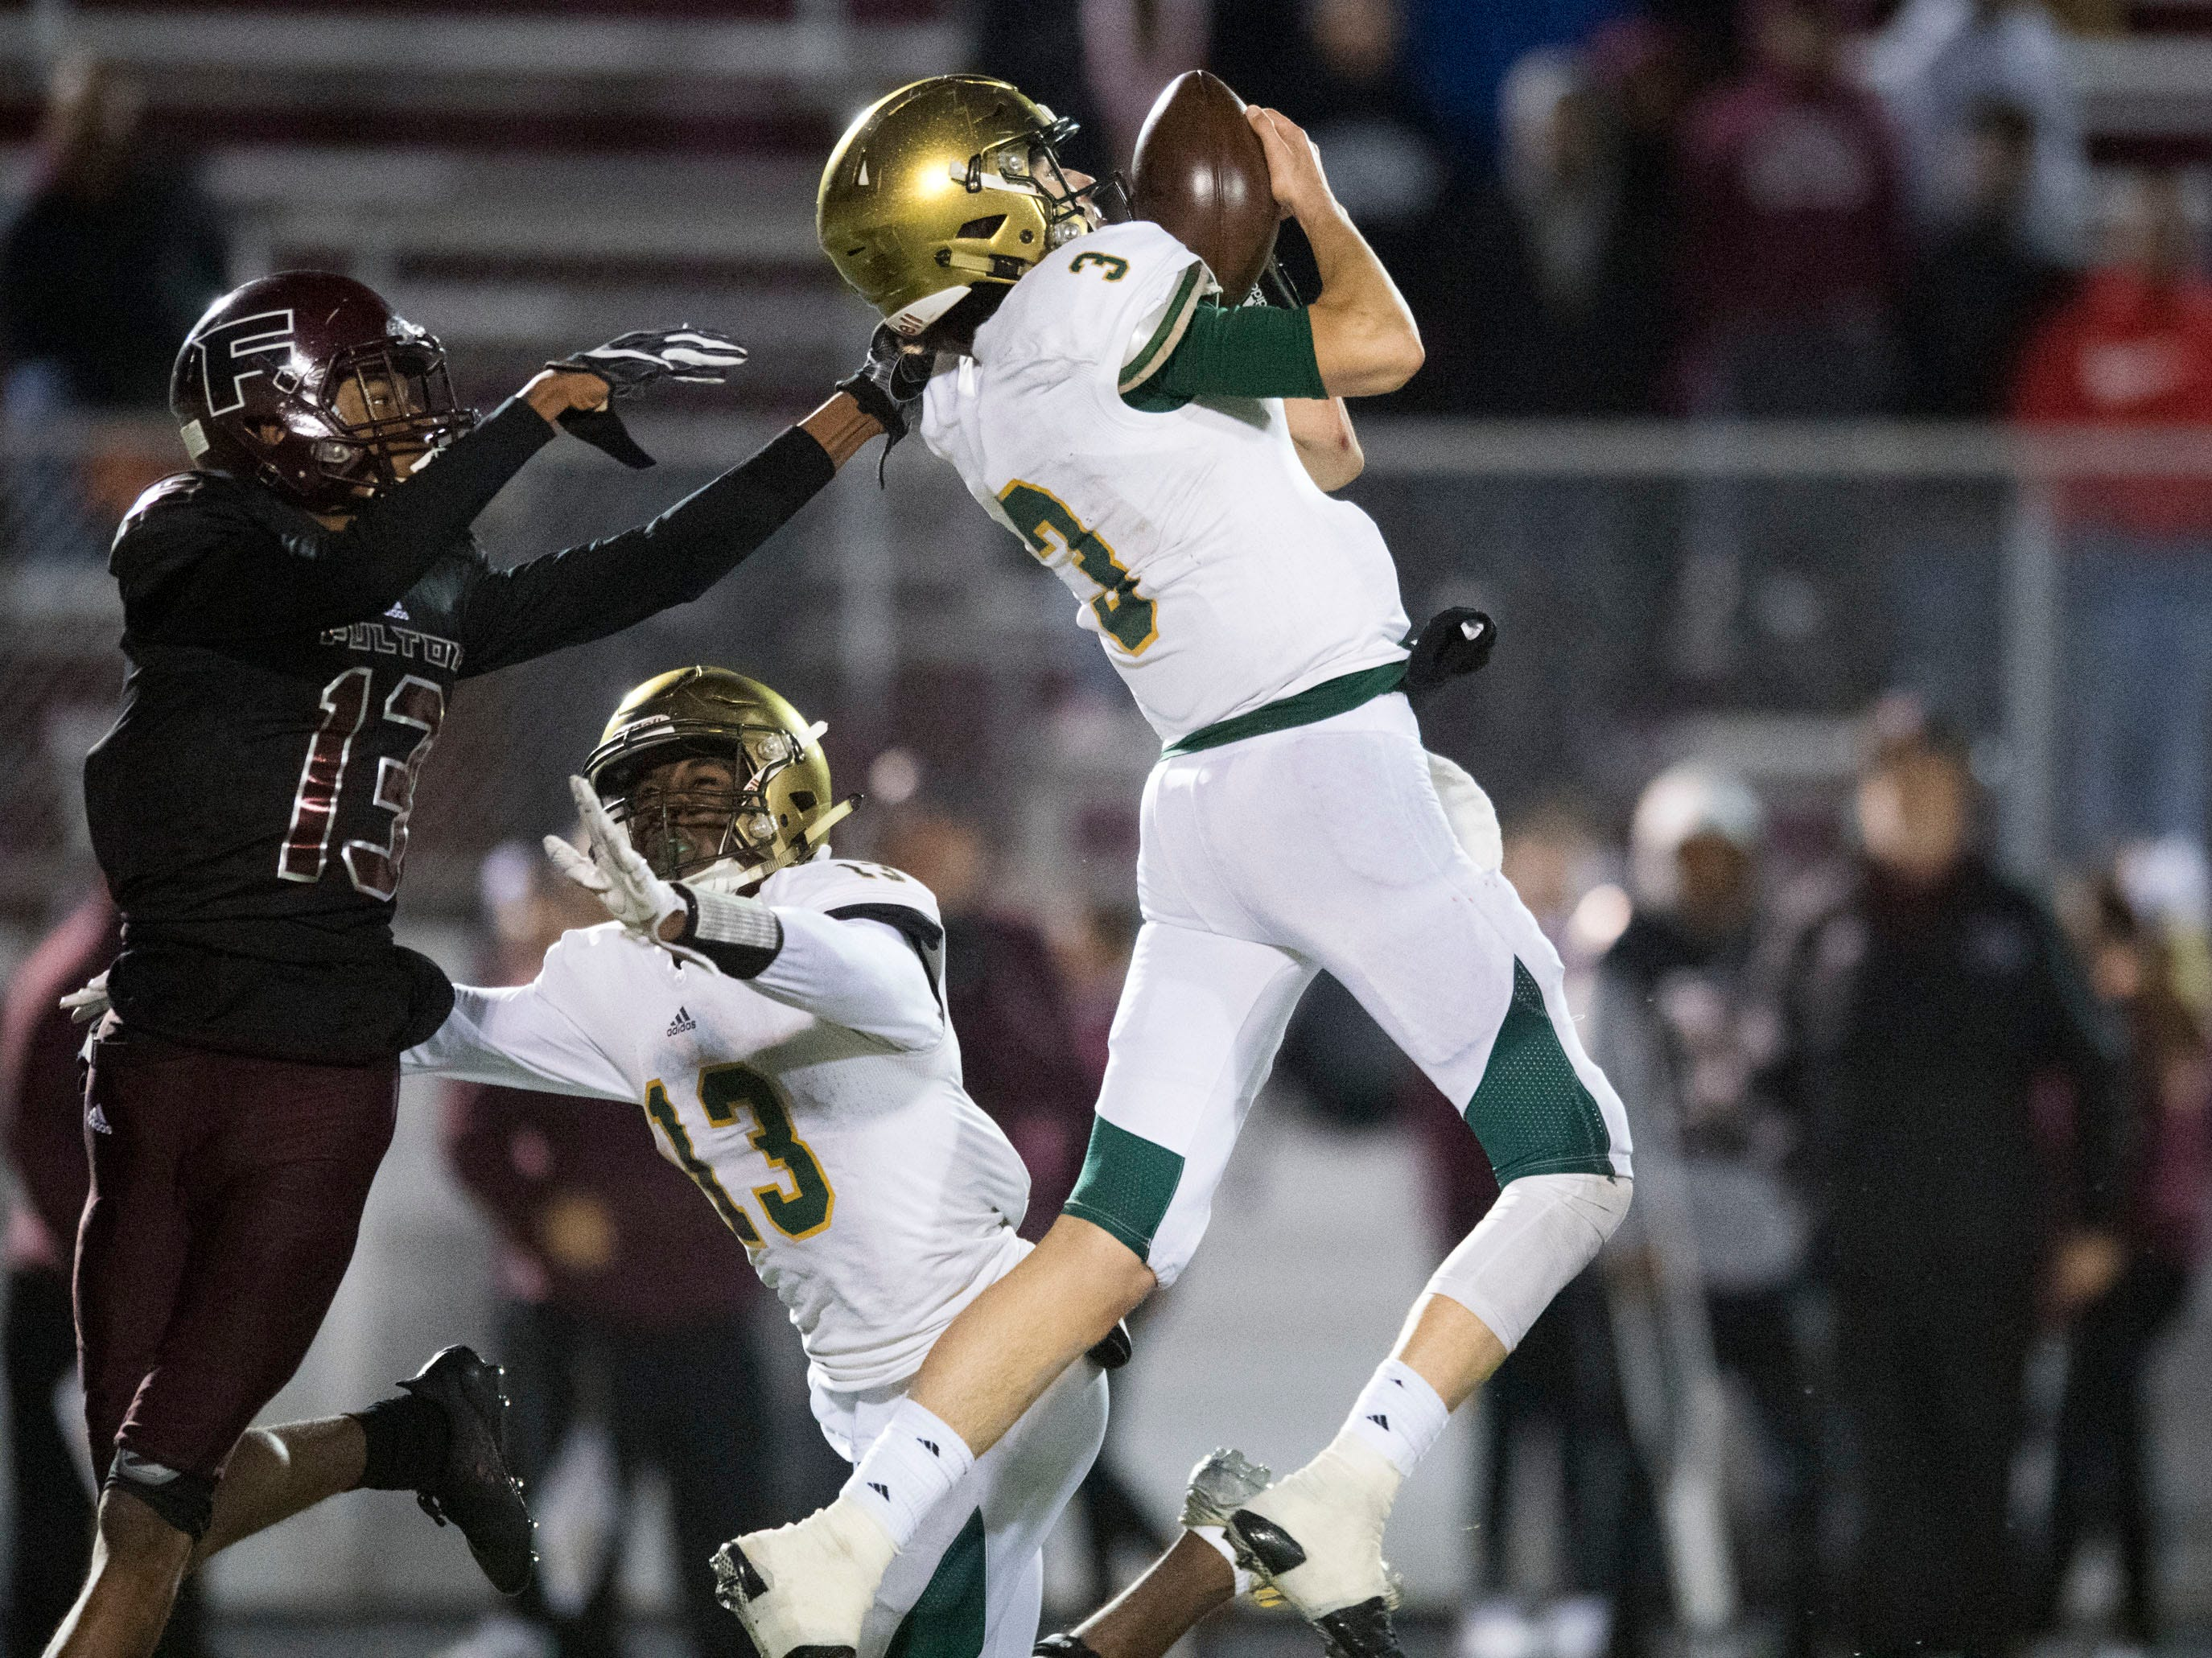 Knoxville Catholic's Jack Jancek (3) intercepts a pass intended for Fulton's Amir Johnson (13). Knoxville Catholic beat Fulton, 28-25 in the second round of the Class 5A playoffs on Friday, November 9, 2018.